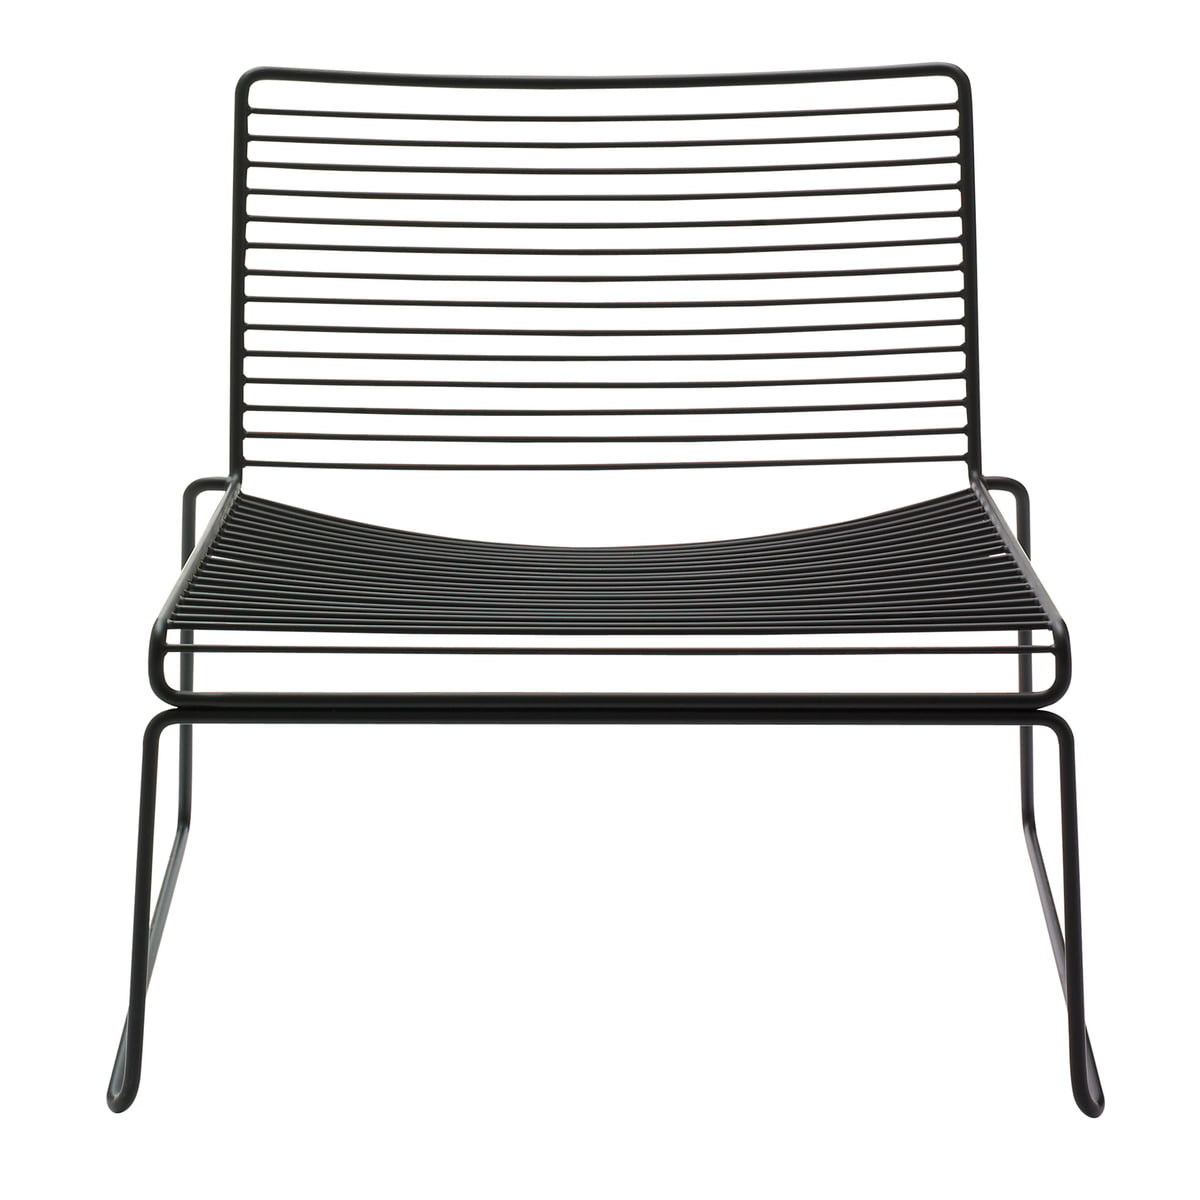 Surprising Hay Hee Lounge Chair Black Alphanode Cool Chair Designs And Ideas Alphanodeonline